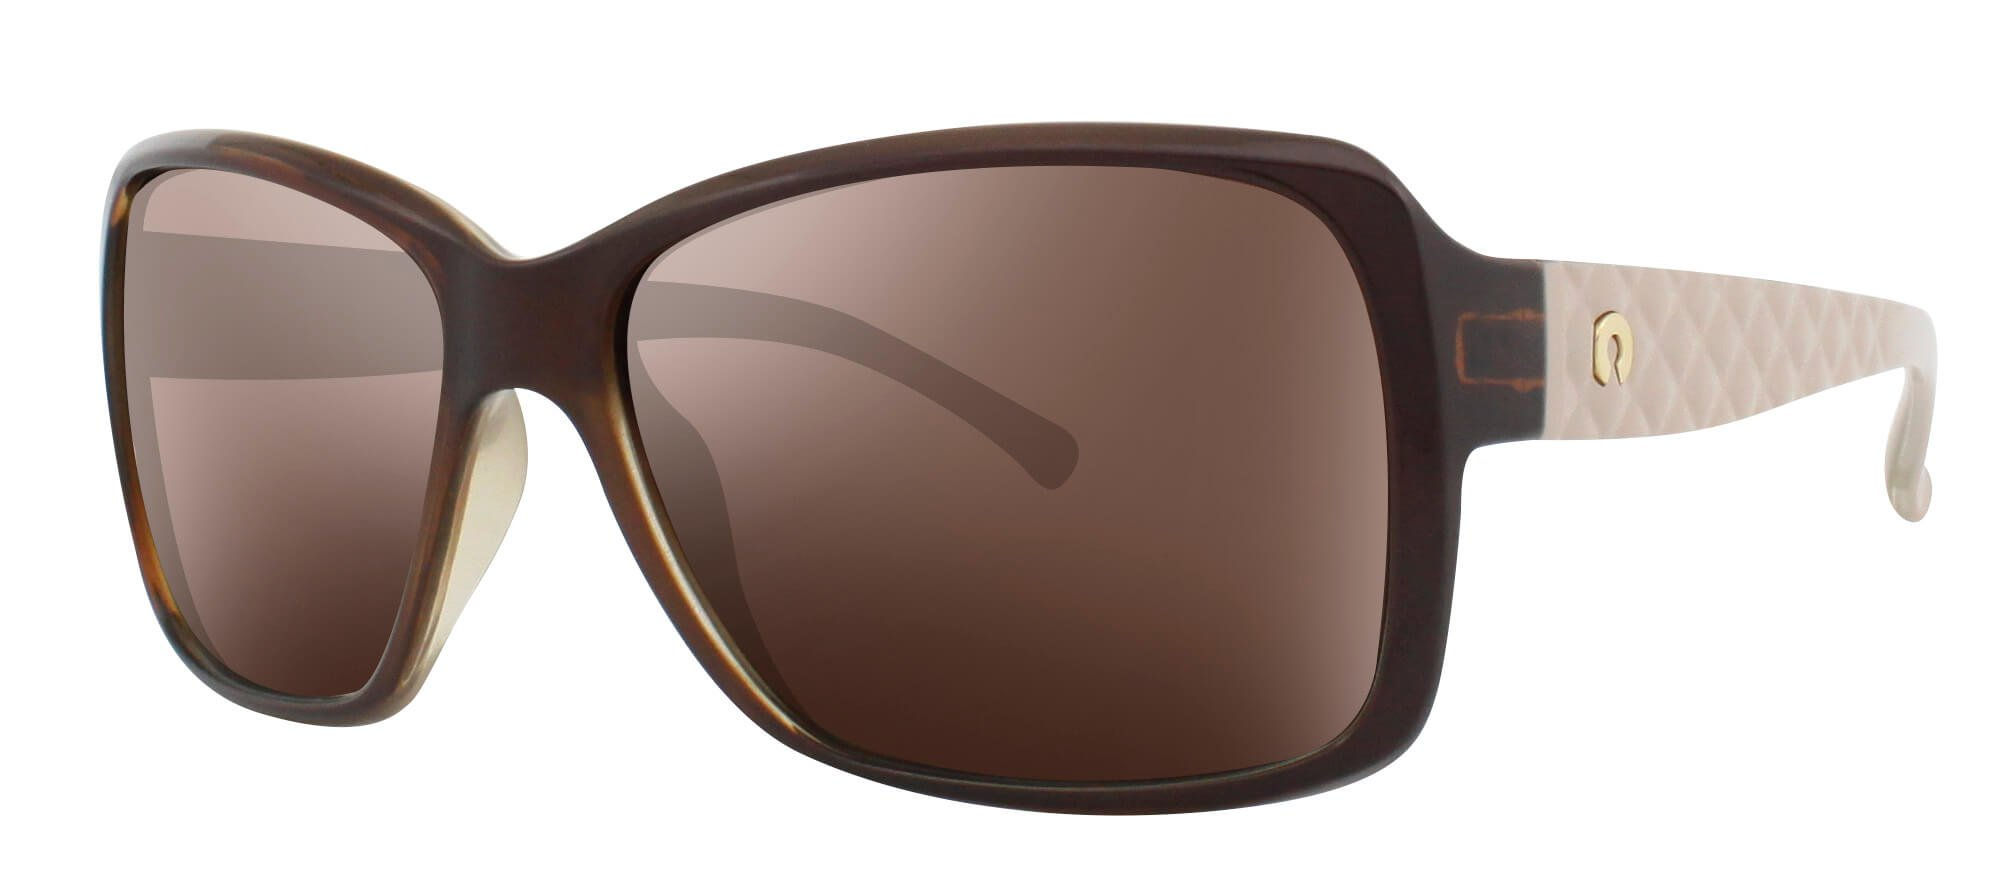 ÓC SECRET KATE BROWN COGNAC/NUDE / POLARIZED GRADIENT BROWN